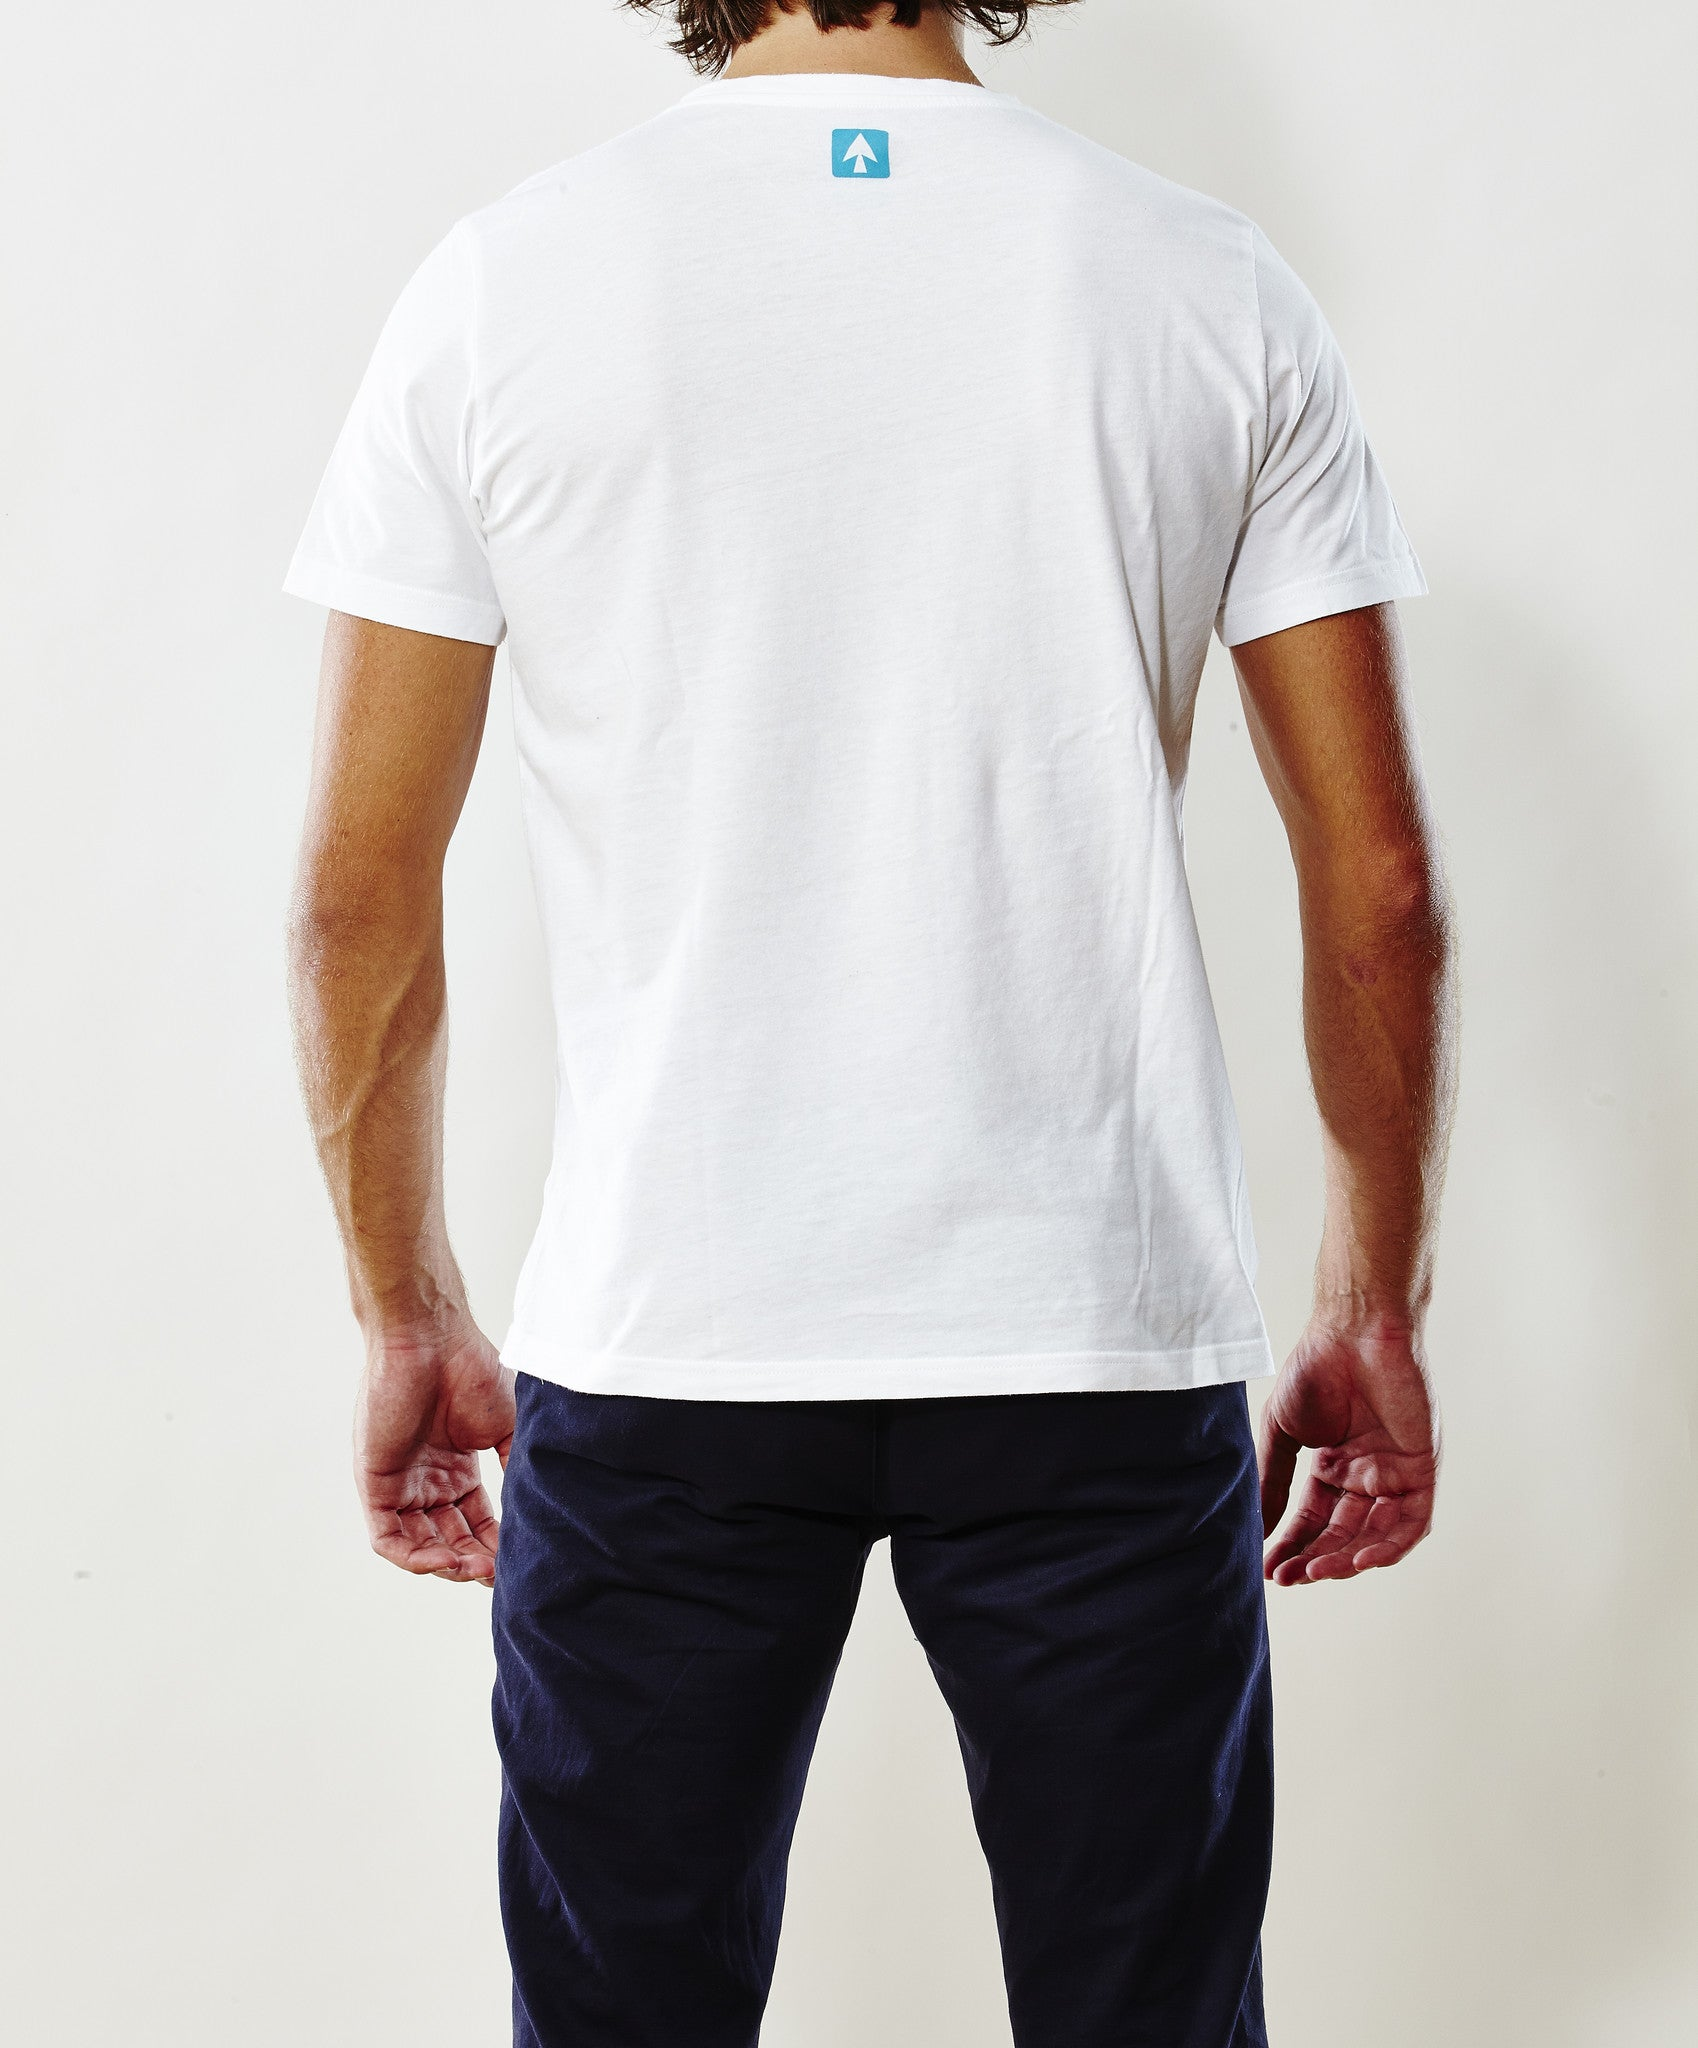 Apney Pocket White T-shirt